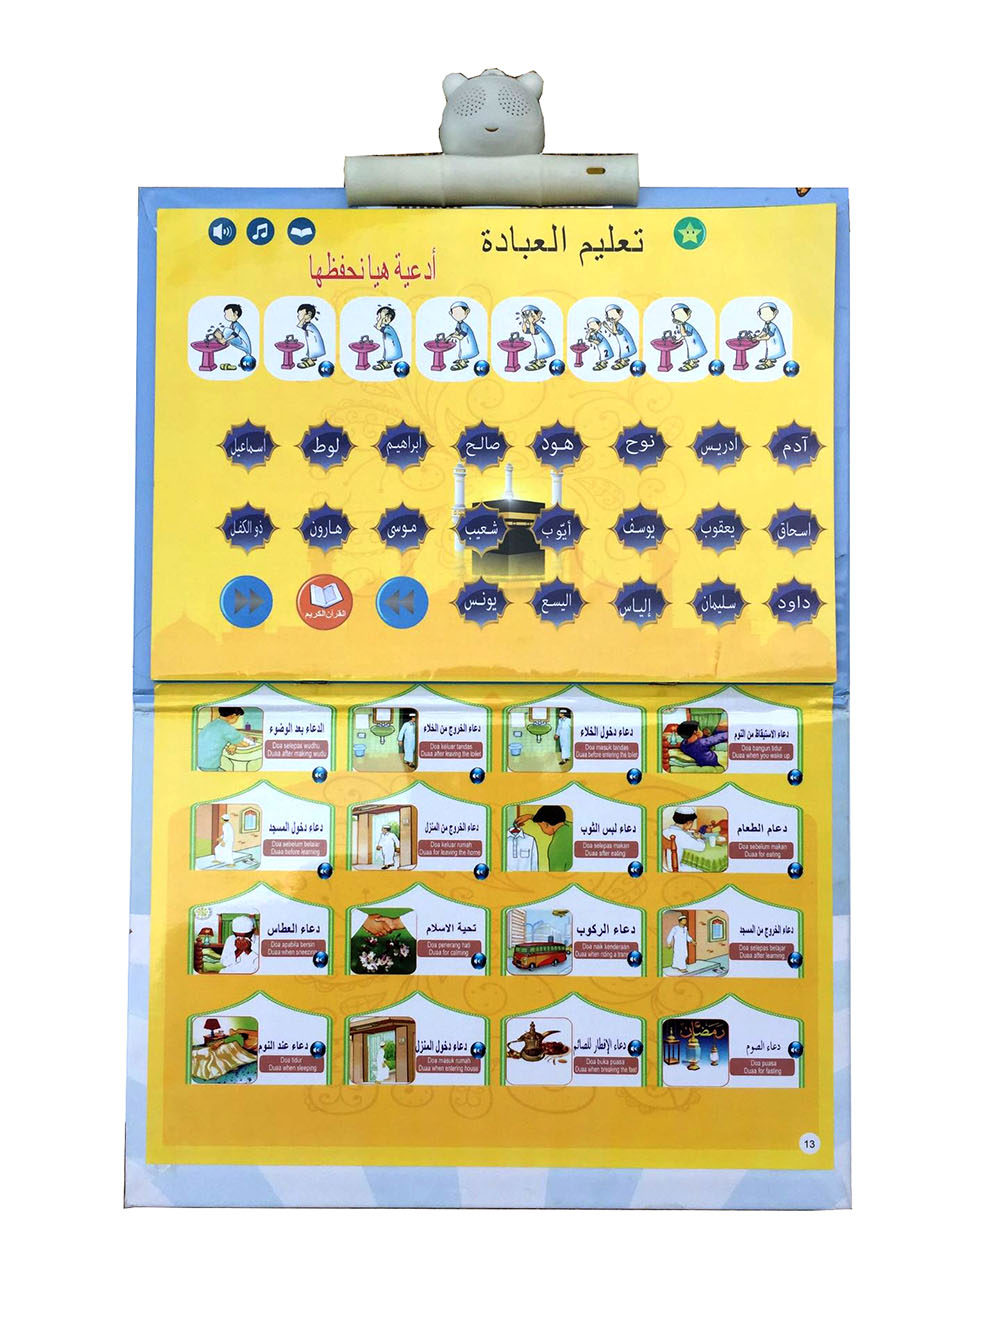 English Arabic Sound Quran Islamic Learning Board, 13 Page Electronic Book Educational Toy, Kid Student Reading Writting Machine